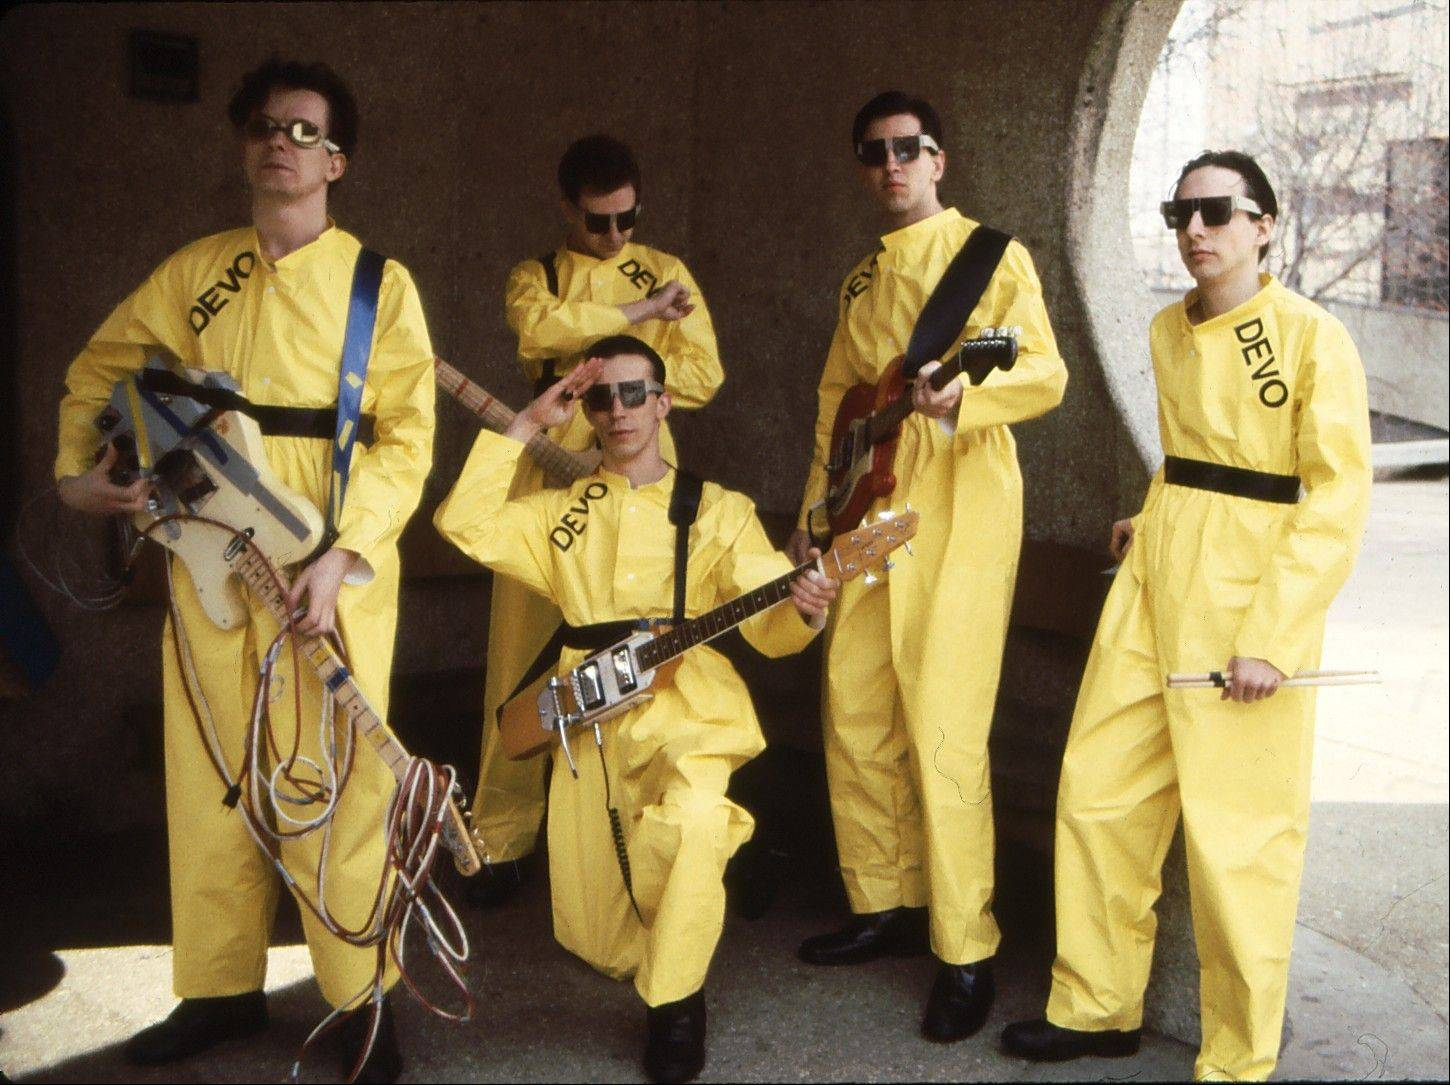 The band Devo (in 1978) � Mark Mothersbaugh, left, Bob Mothersbaugh, kneeling, Jerry Casale, Bob Casale and Alan Myers. Drummer Alan Myers died Monday after a battle with brain cancer. He was 58.